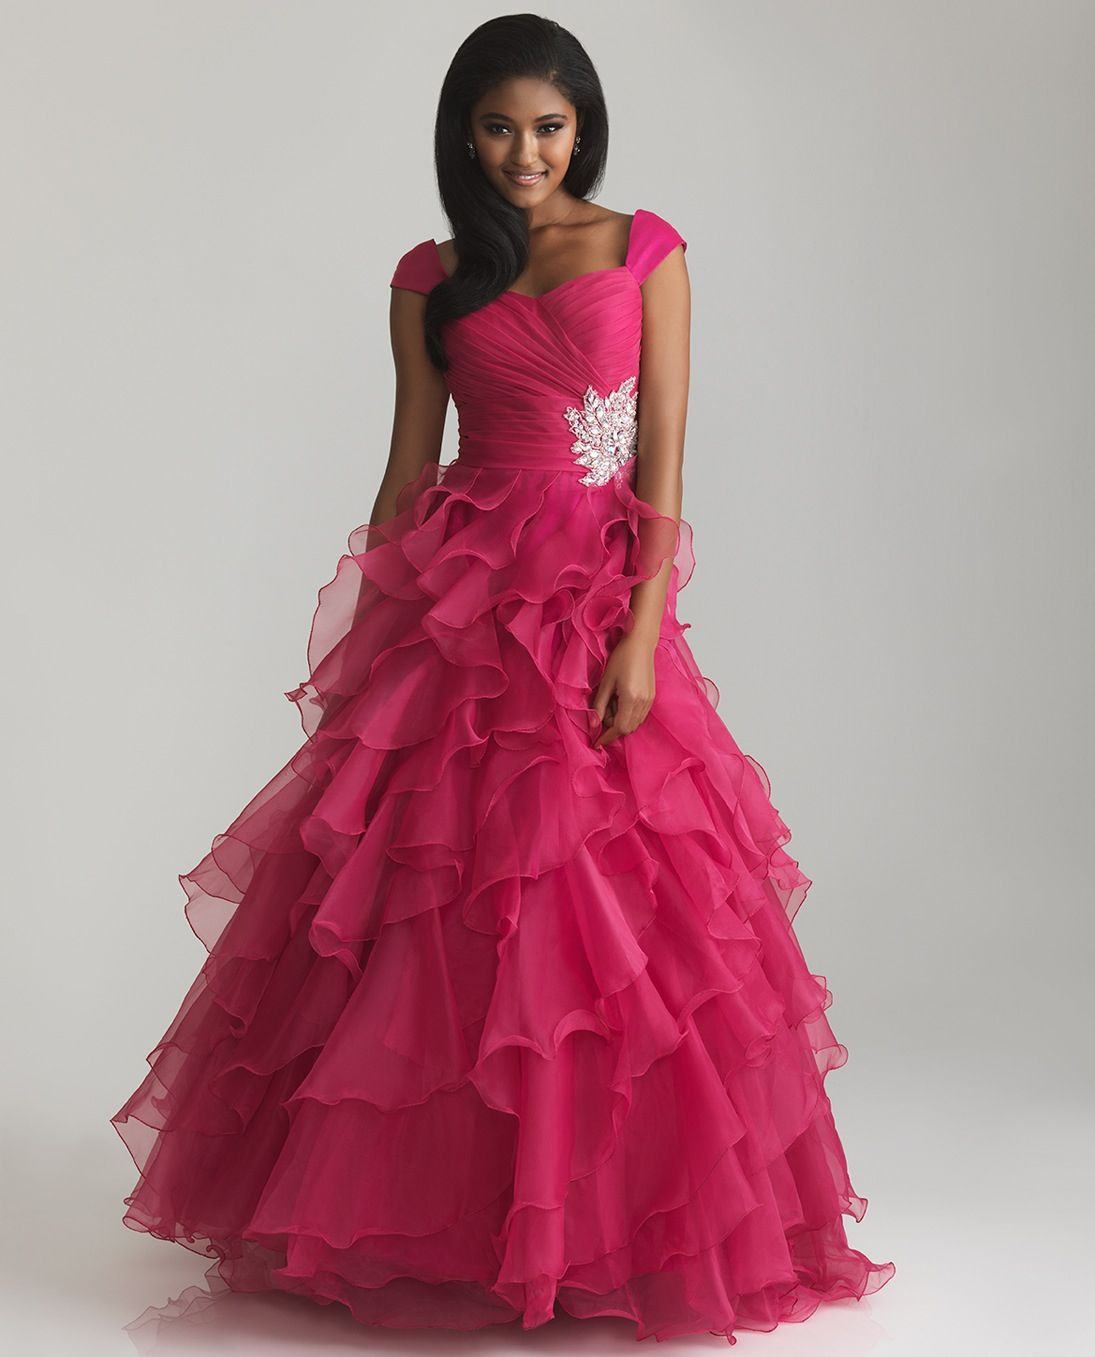 Cute Dress For Valentines Day Dance 2014 Valentine S